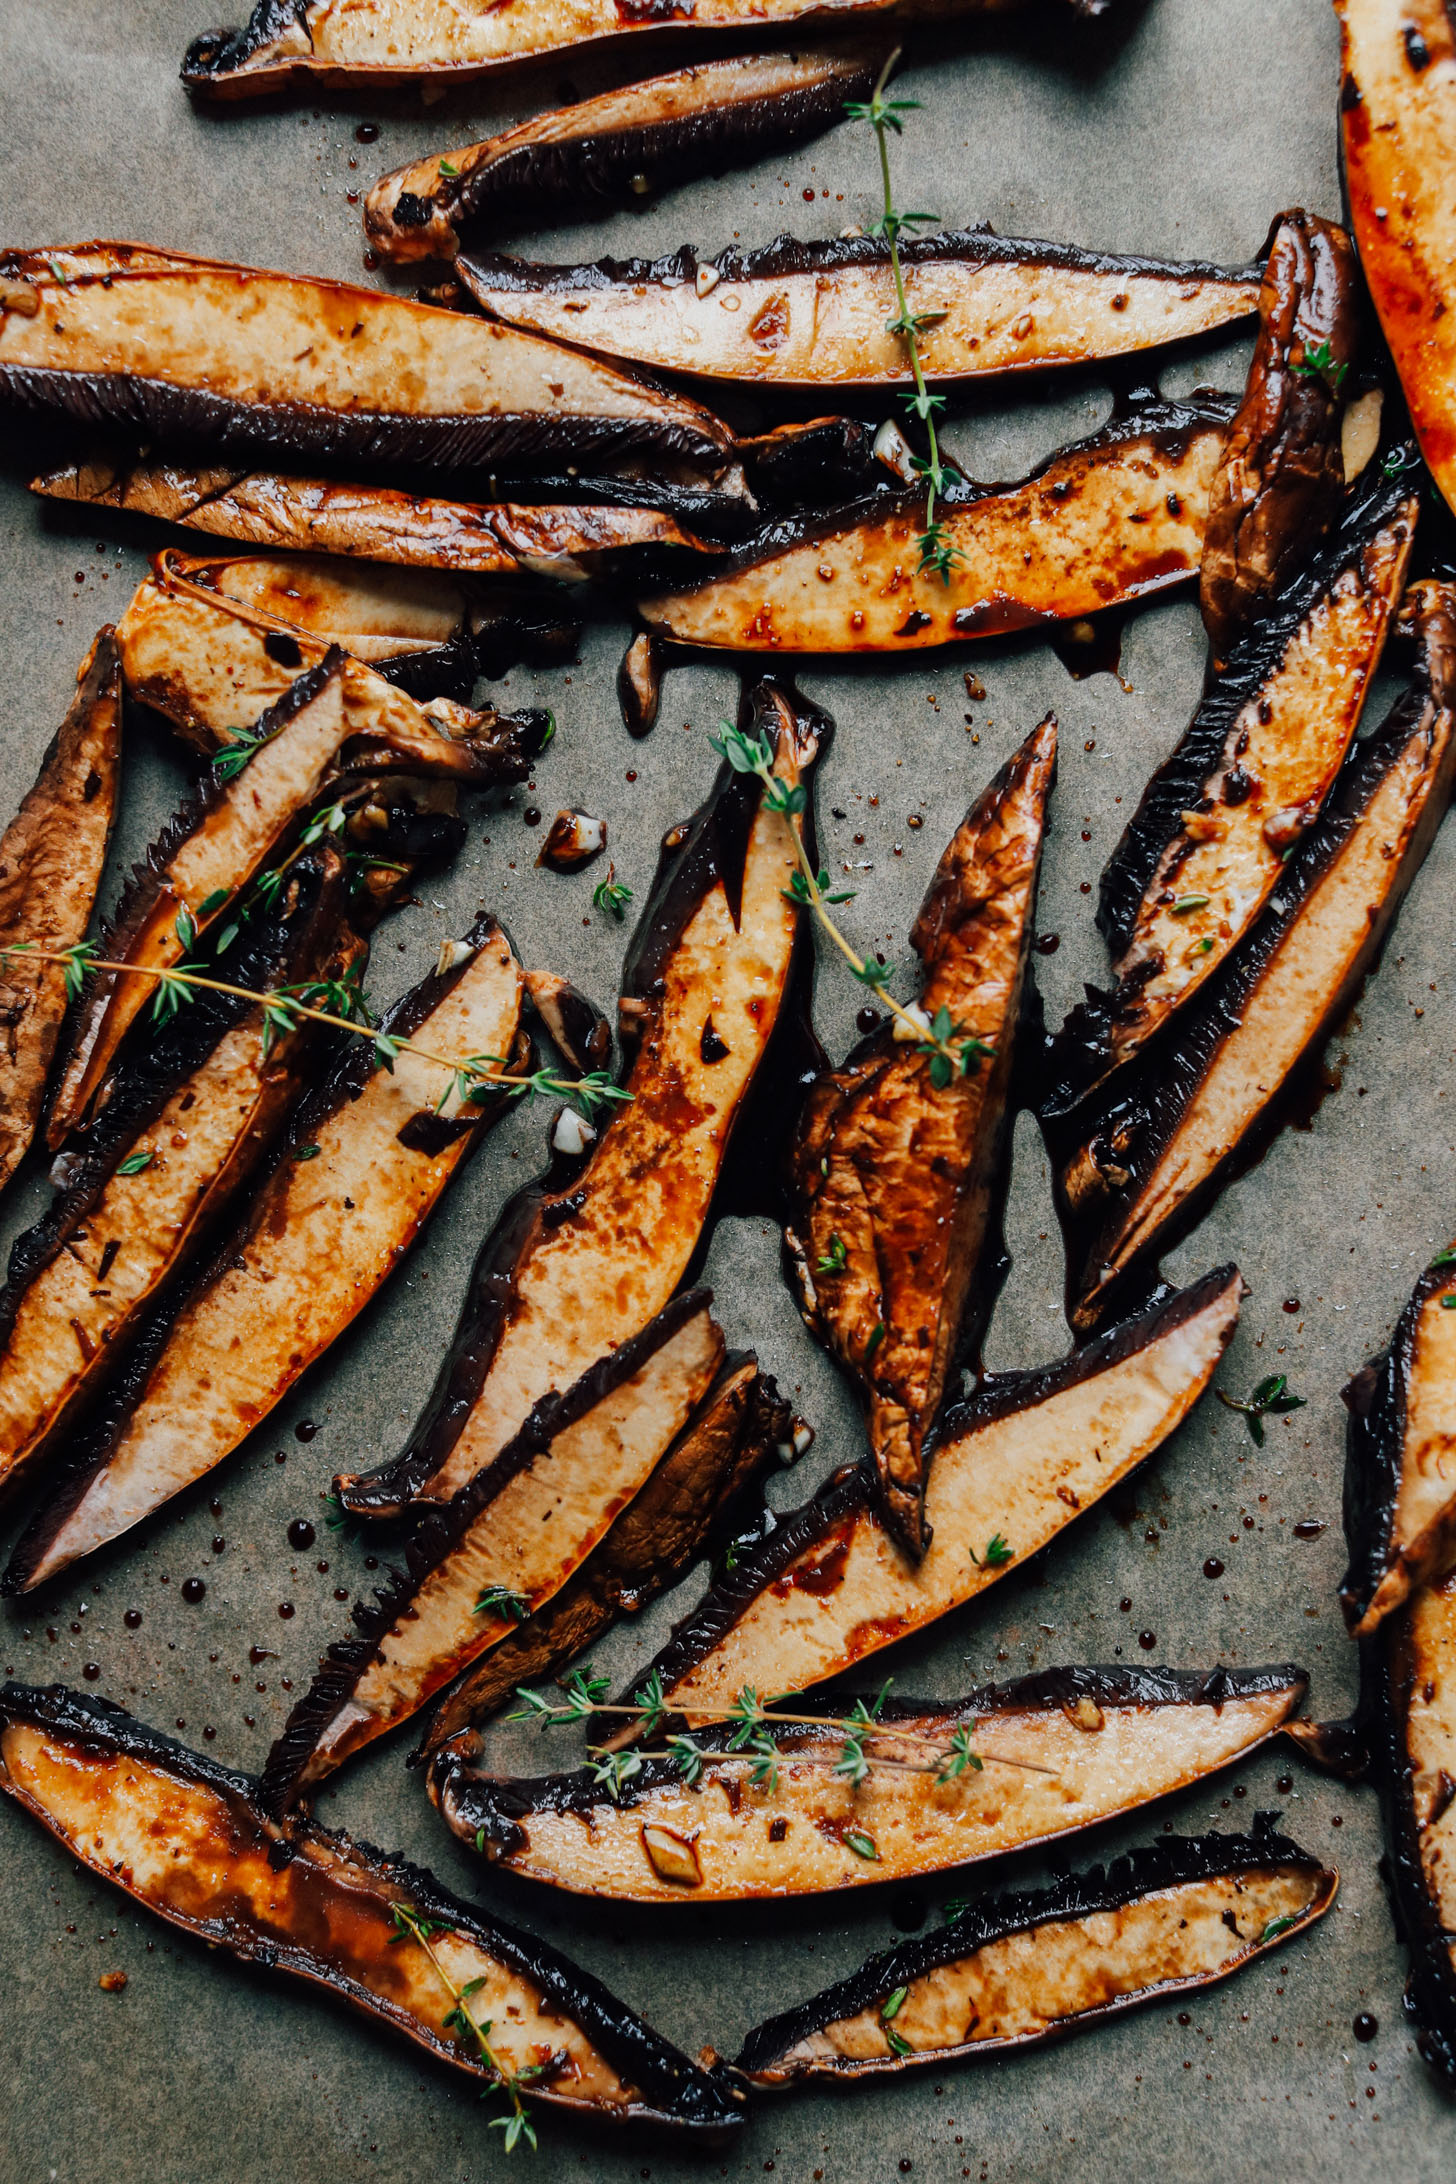 Beautifully roasted eggplant spears with fresh thyme on a baking sheet